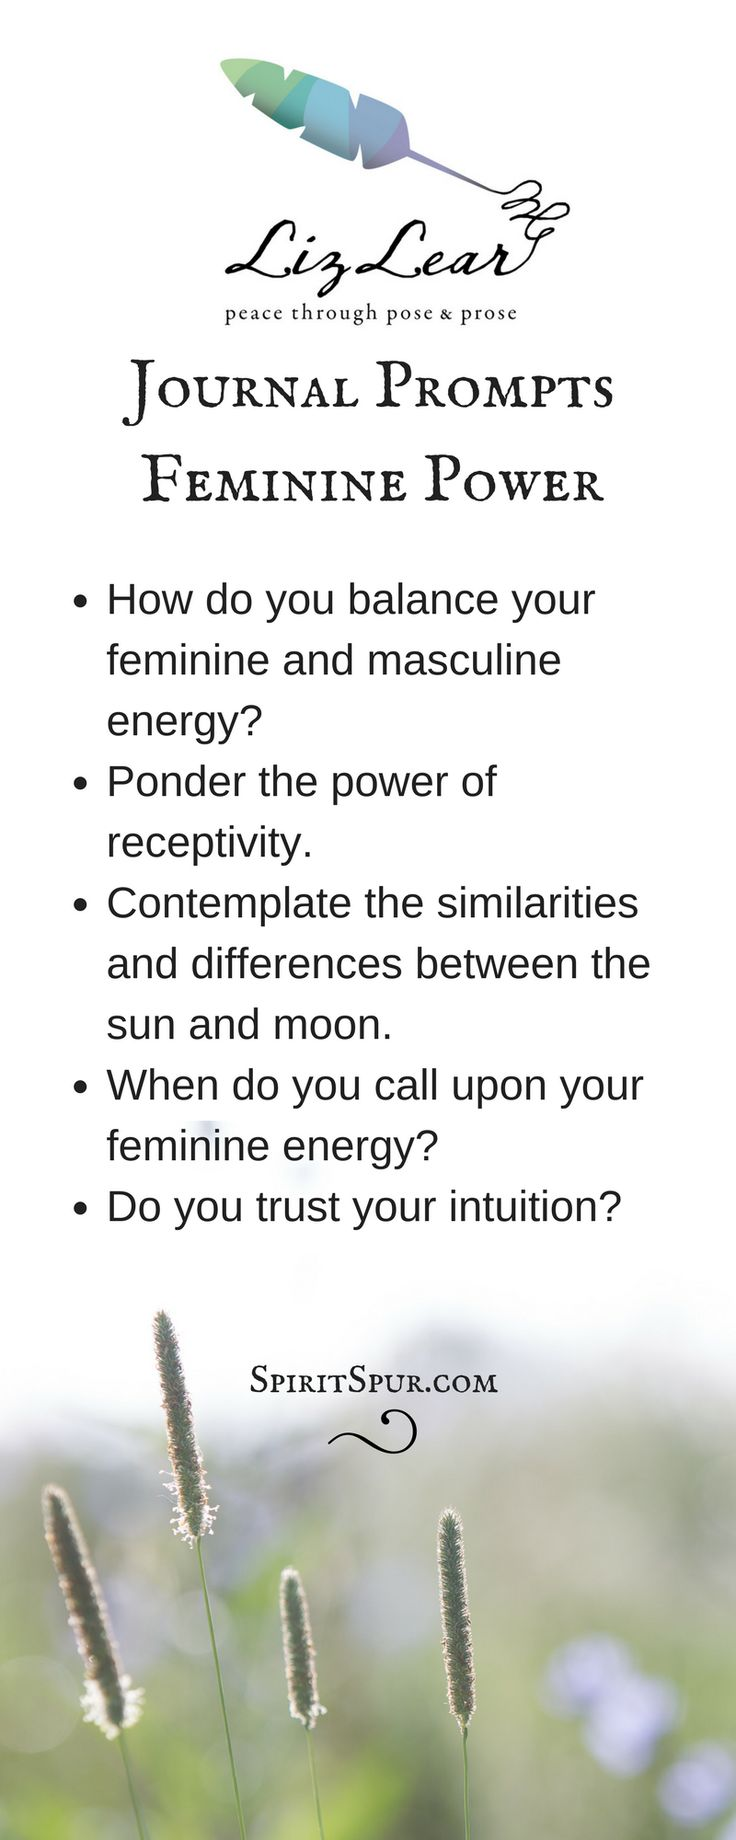 Yoga journal writing prompts from Liz Lear explore feminine power   free Cultivate Contentment guide with 20 yoga-inspired journal writing prompts   stress relief   yin yoga   divine feminine   girl power   moon yoga